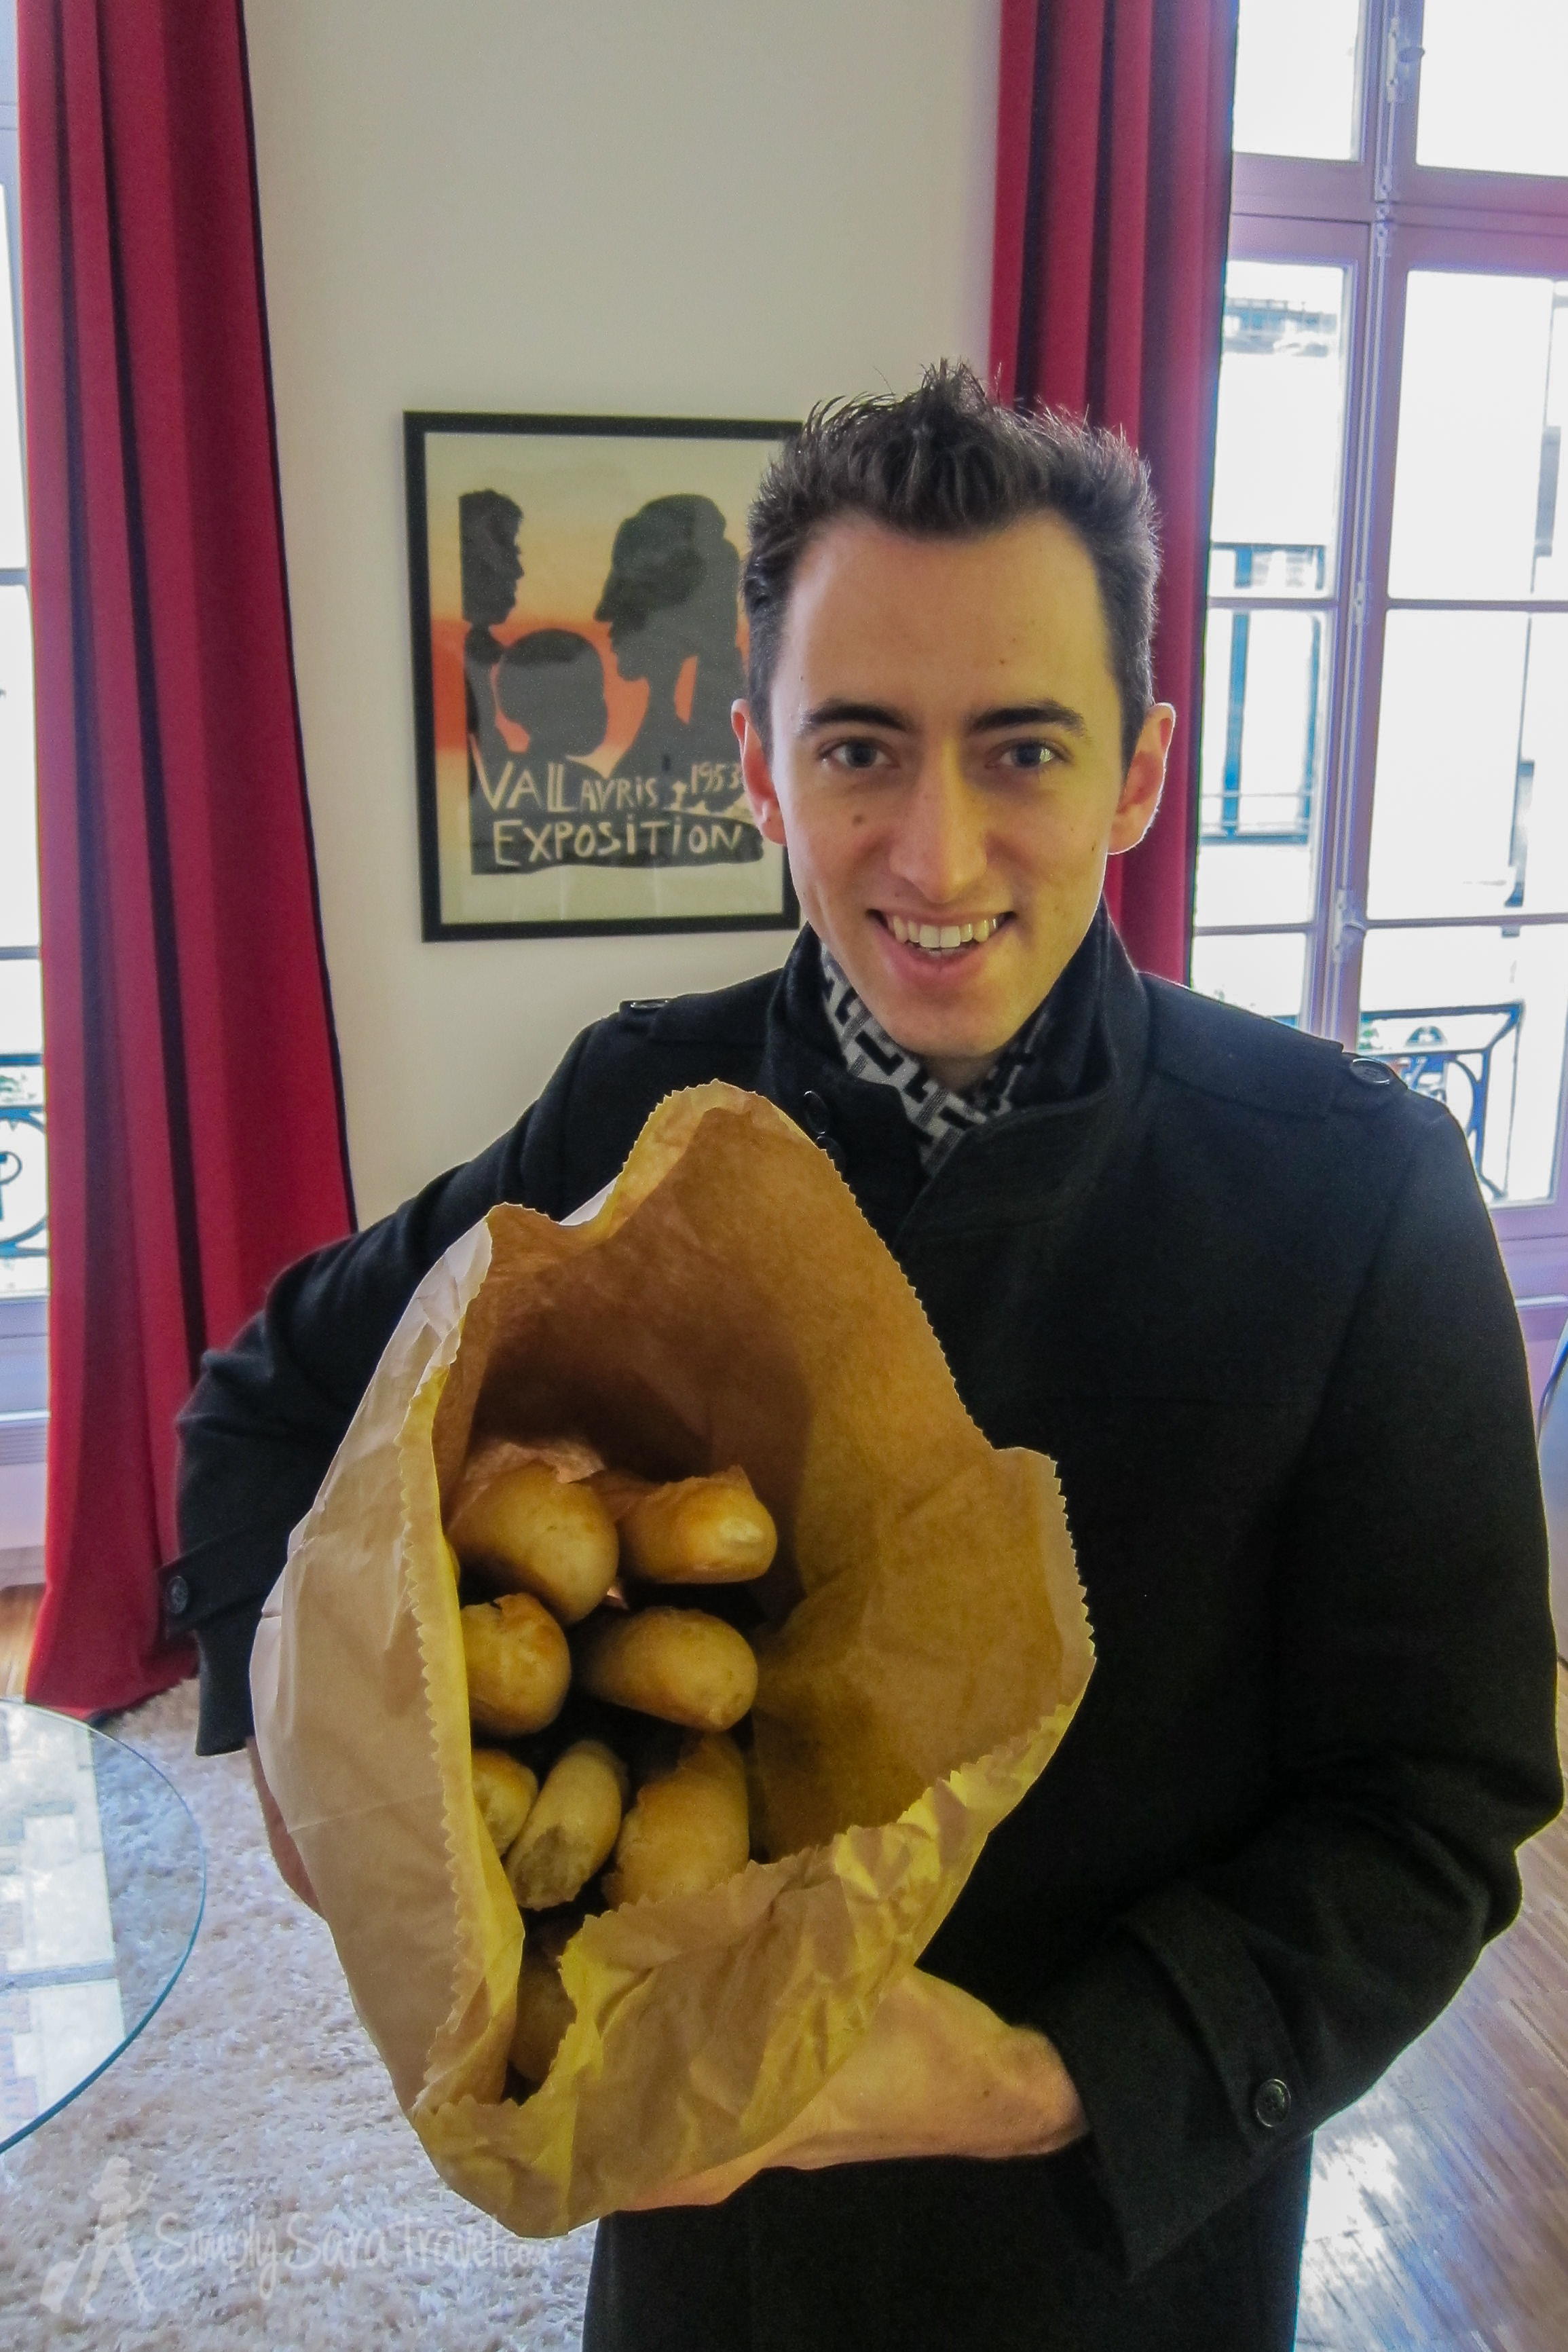 Michael may not cook but he has the important task of procuring the baguettes for the party. Here he is happily holding15 fresh out of the oven!